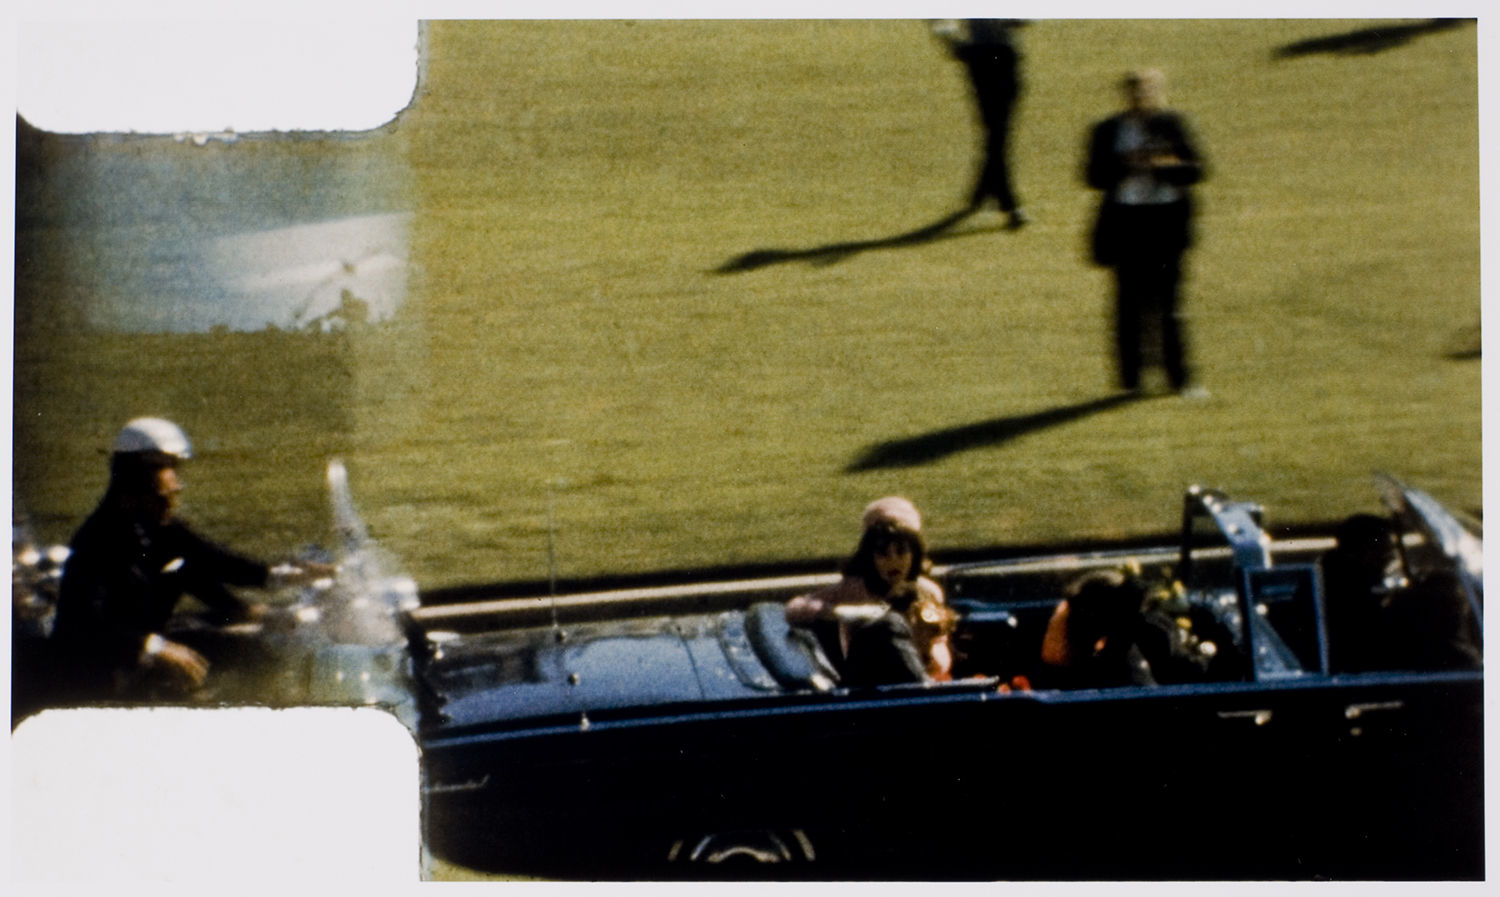 details of the assassination of president john fitzgerald kennedy in 1963 On november 29, 1963 president lyndon b johnson appointed the president's commission on the assassination of president kennedy it came to be known as the warren commission after its chairman, earl warren, chief justice of the united states.